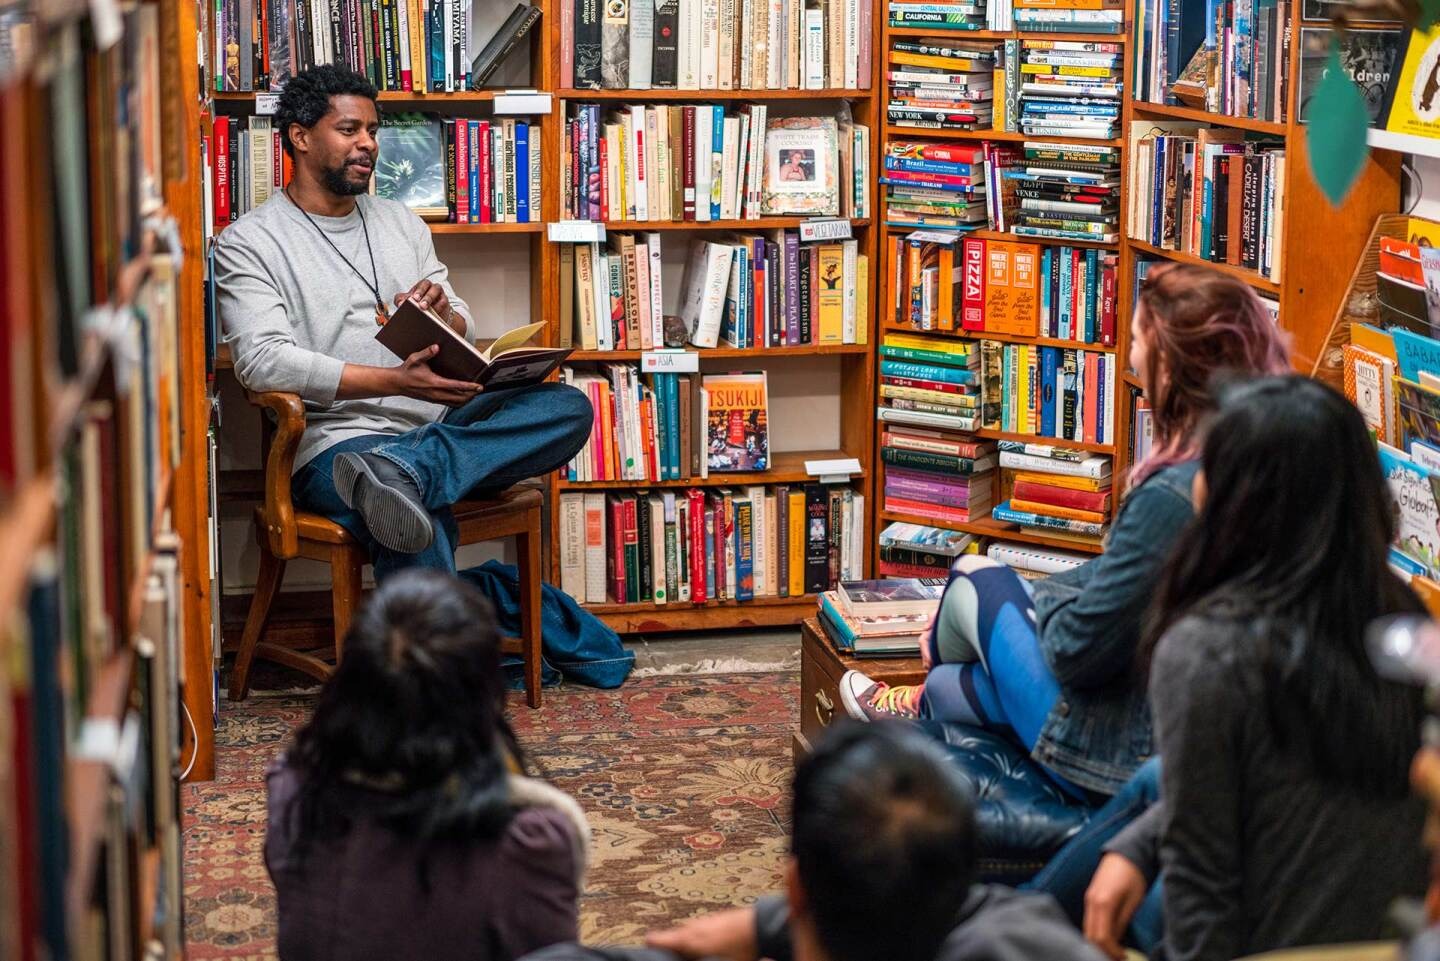 A man reads in a library to a group of people. | iStock